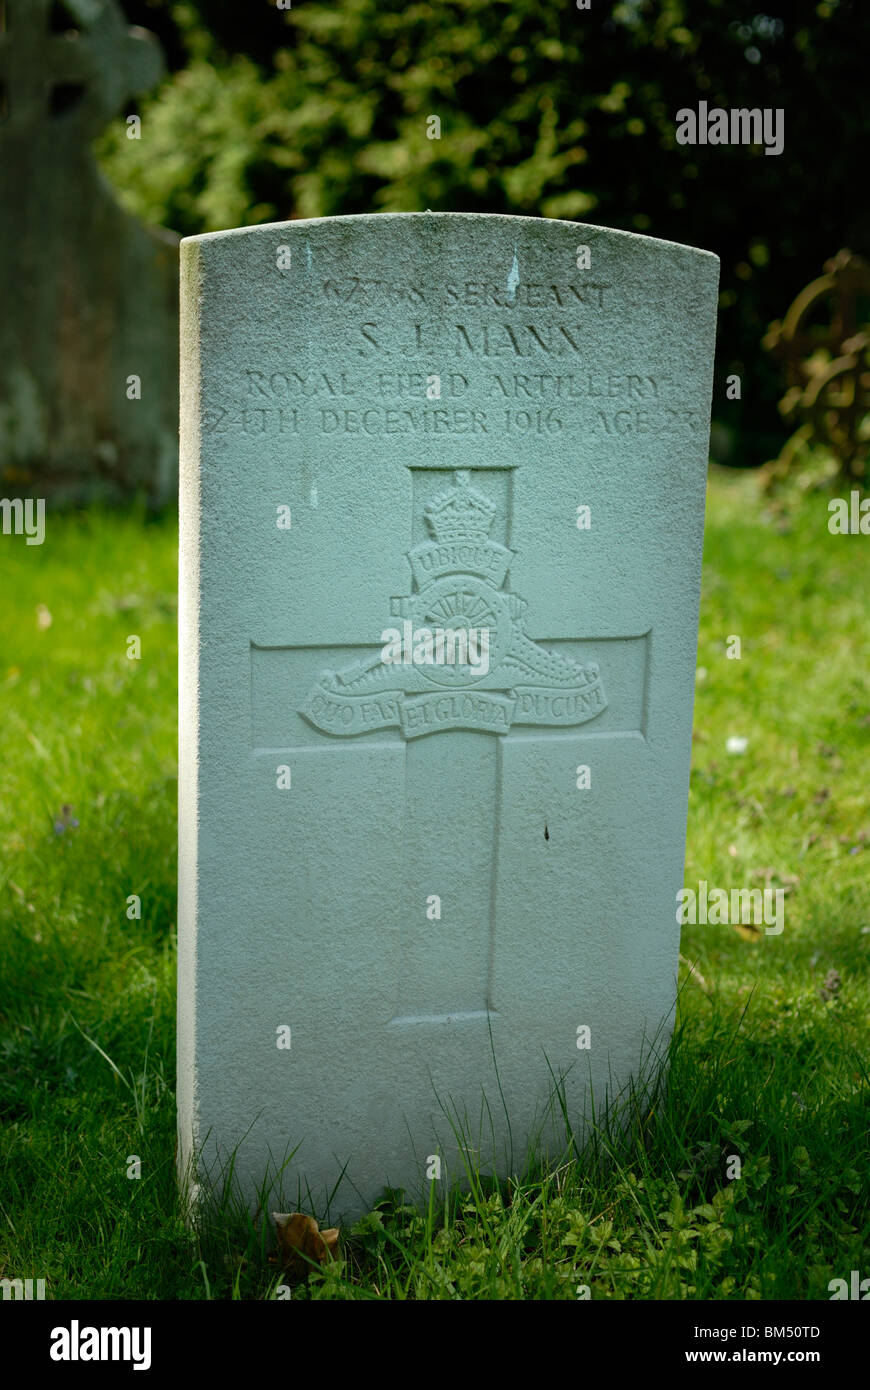 East 1916 Stock Photos & East 1916 Stock Images - Alamy